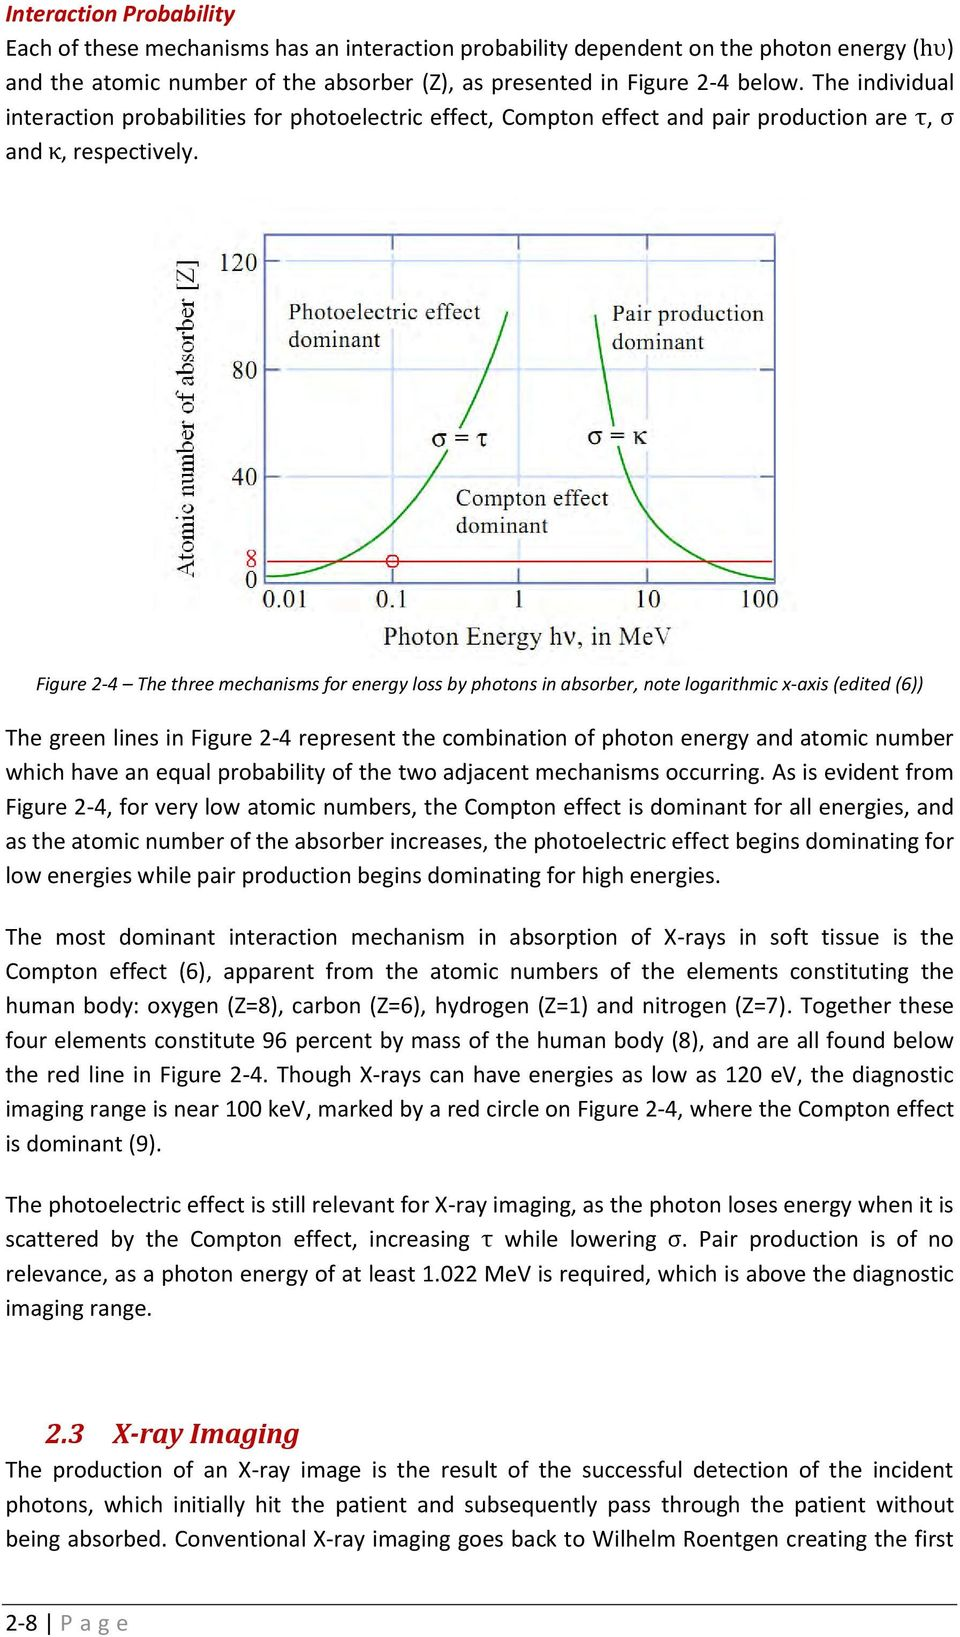 Figure 2-4 The three mechanisms for energy loss by photons in absorber, note logarithmic x-axis (edited (6)) The green lines in Figure 2-4 represent the combination of photon energy and atomic number